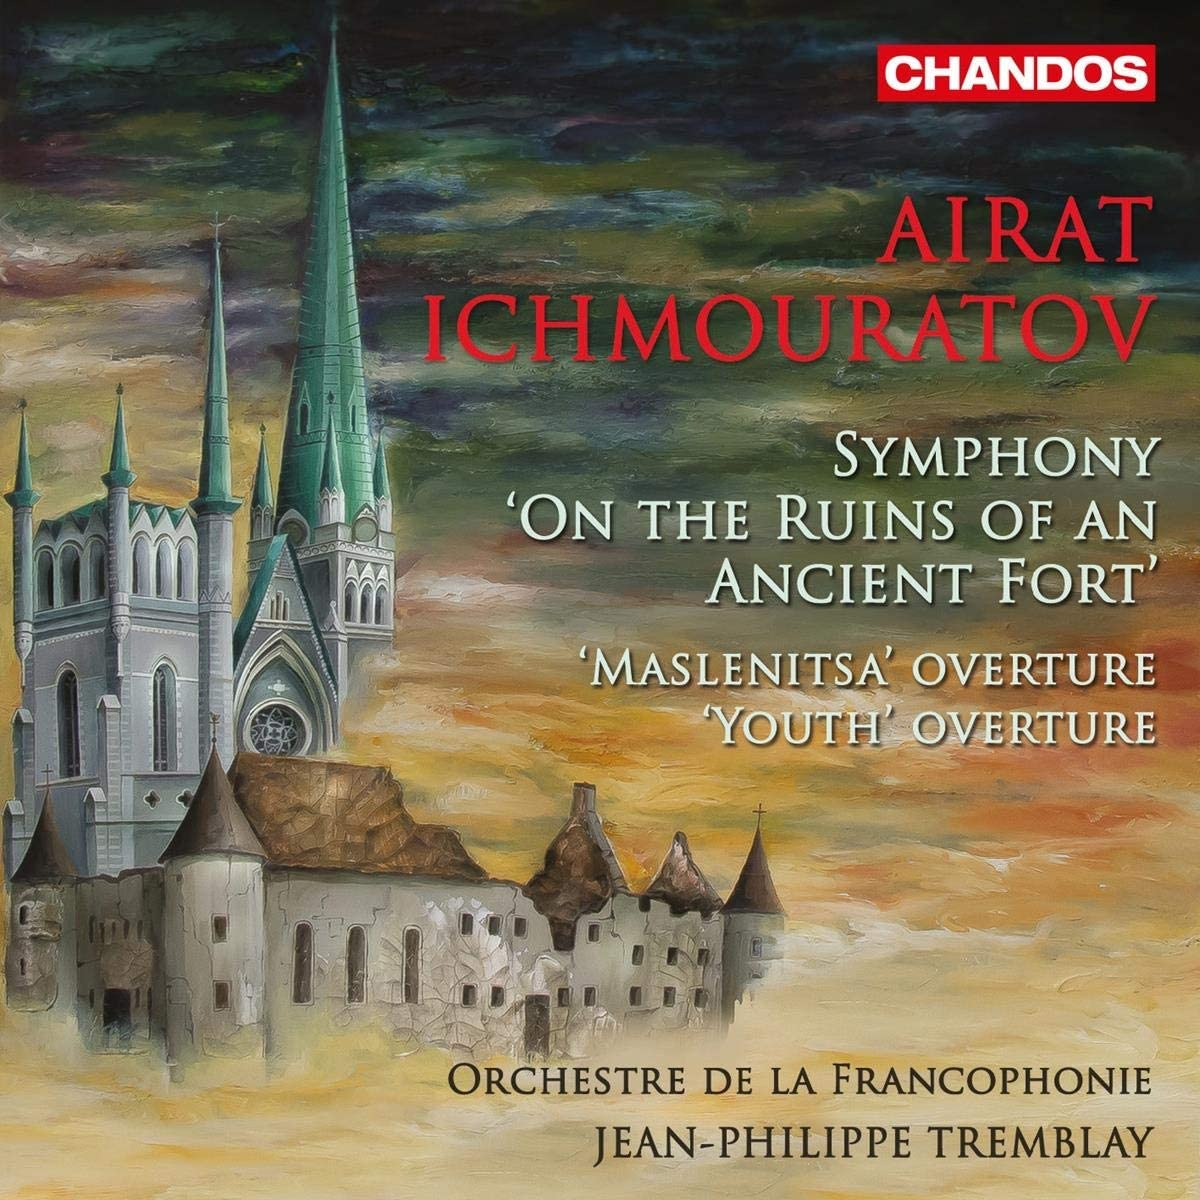 Review of ICHMOURATOV Symphony 'On the Ruins of an Ancient Fort'